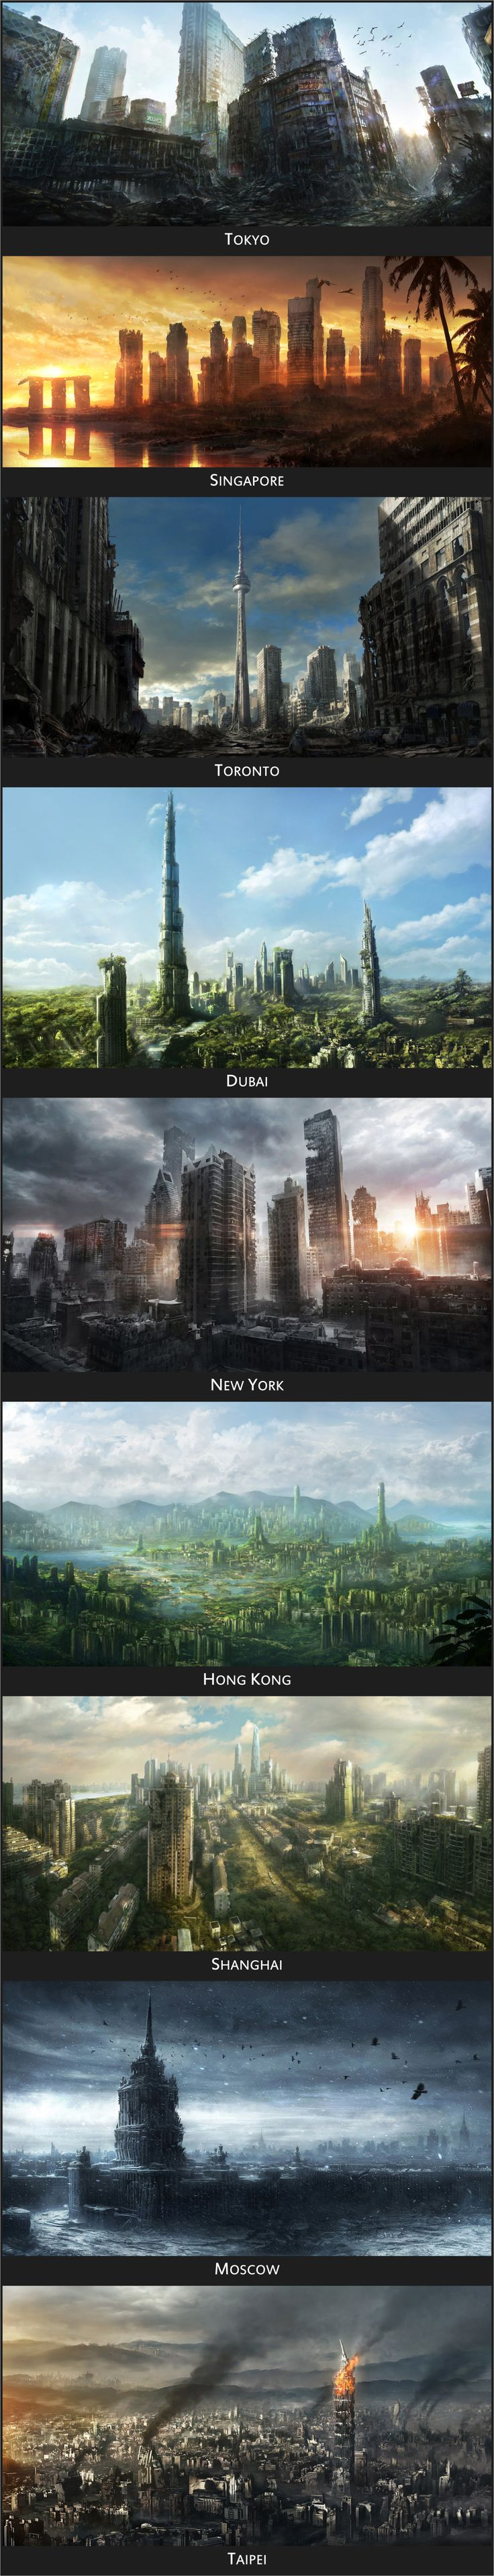 Apocalyptic cities.